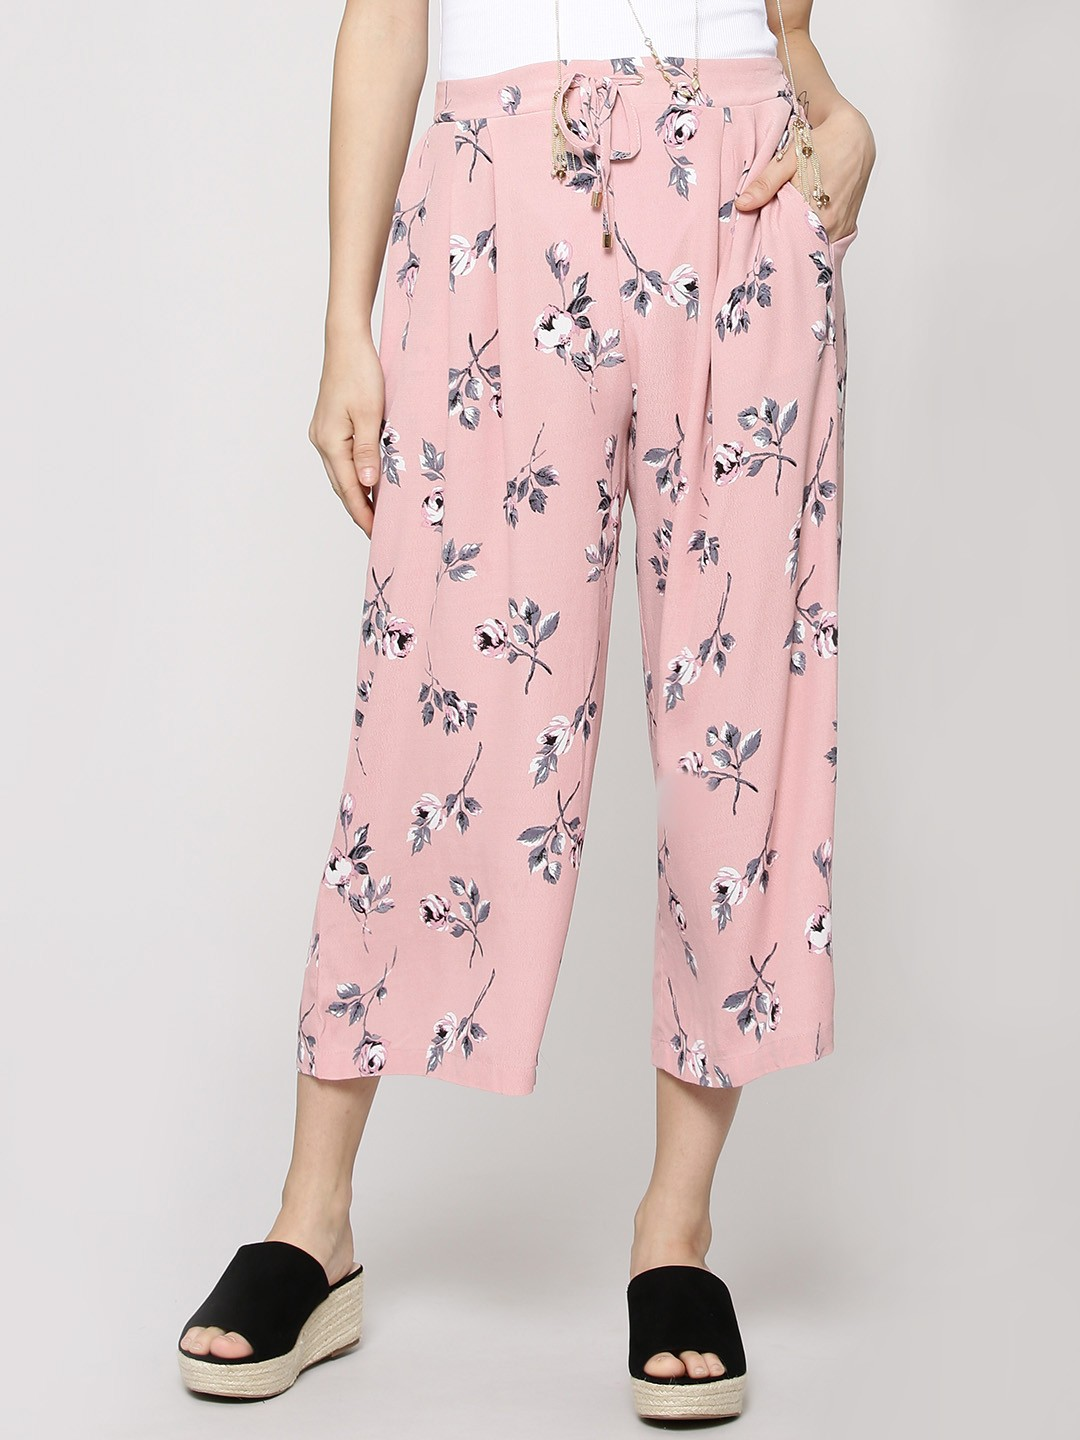 New Look PINK PATTERN Indie Floral Culottes 1